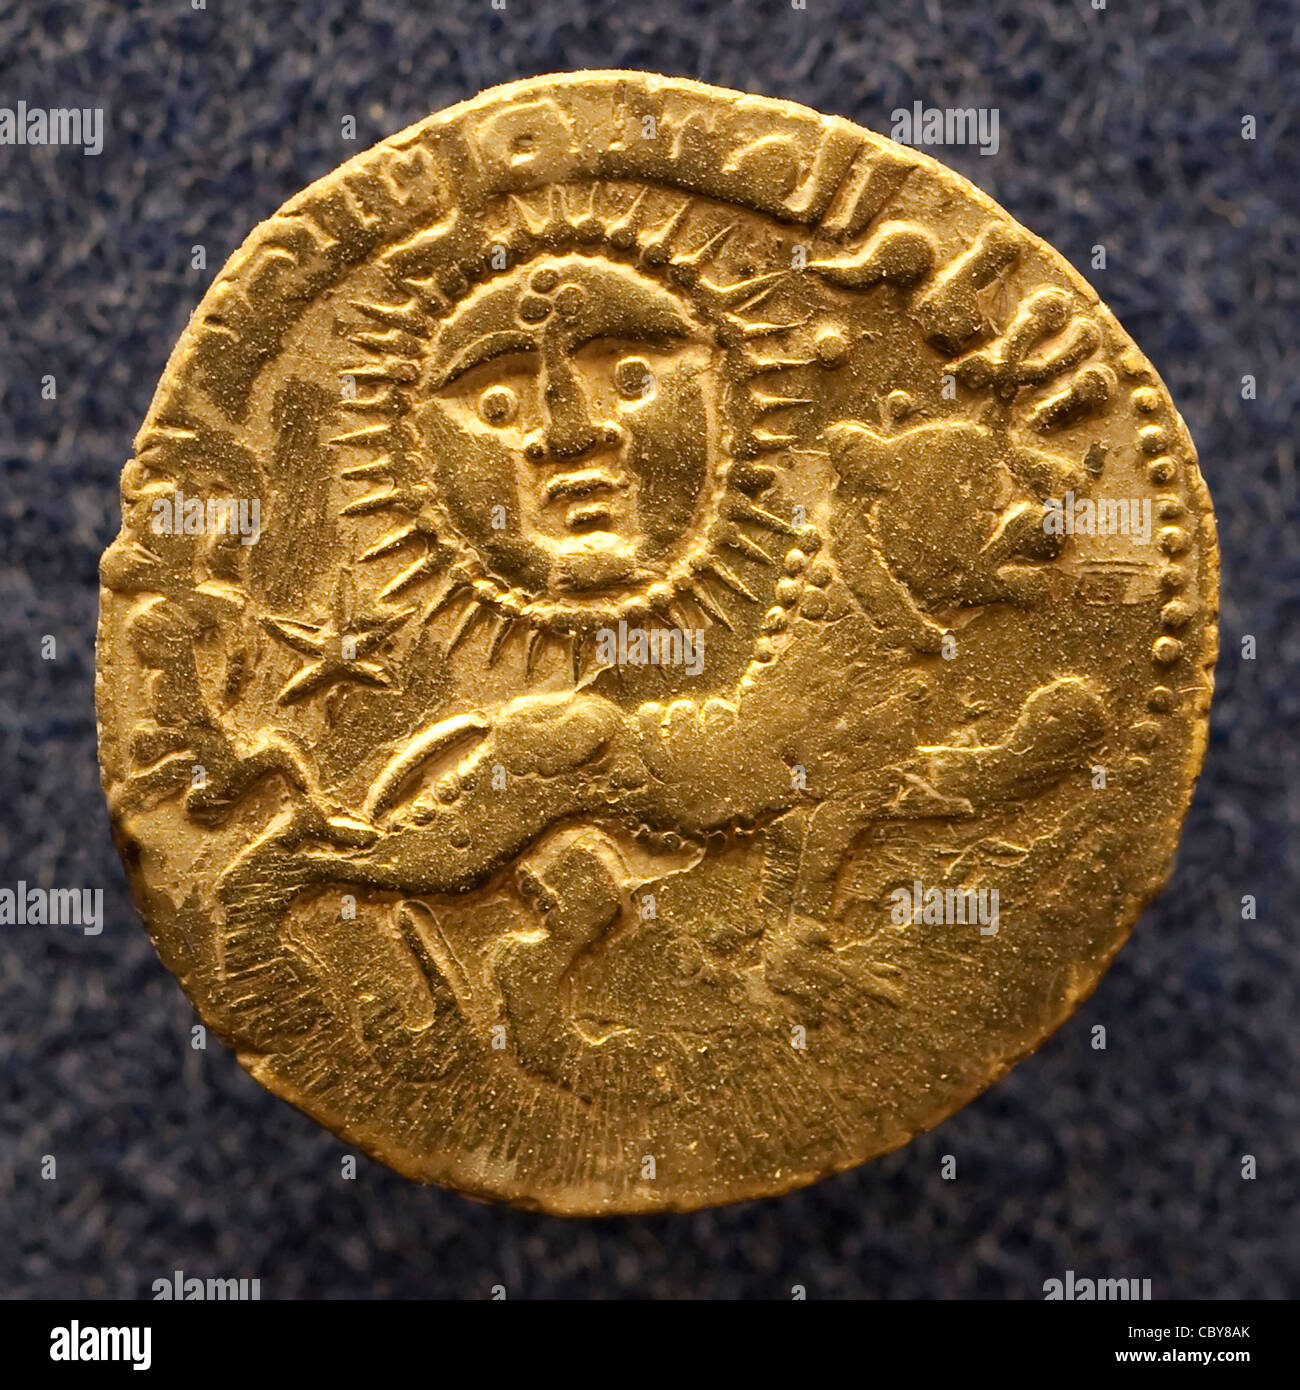 Ancient gold coin from the Seljuks dynasty which was a high medieval Turko-Persian Sunni Muslim empire depicting a lion and the sun Stock Photo